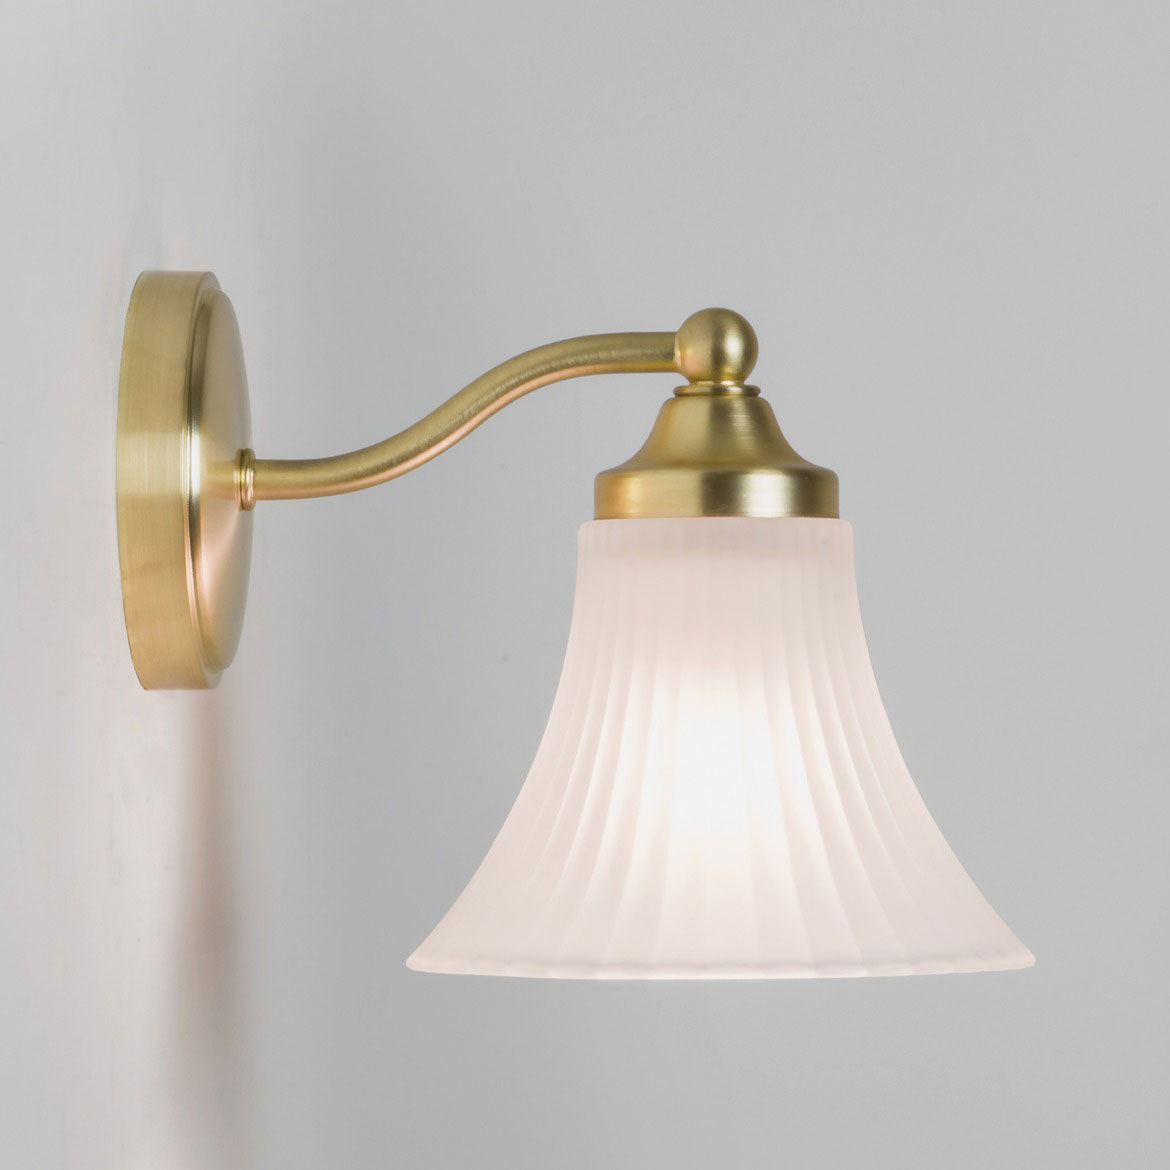 Nena Bathroom Wall Light In Matt Gold With White Opal Glass Bell Shaped Diffuser Ip44 Rated